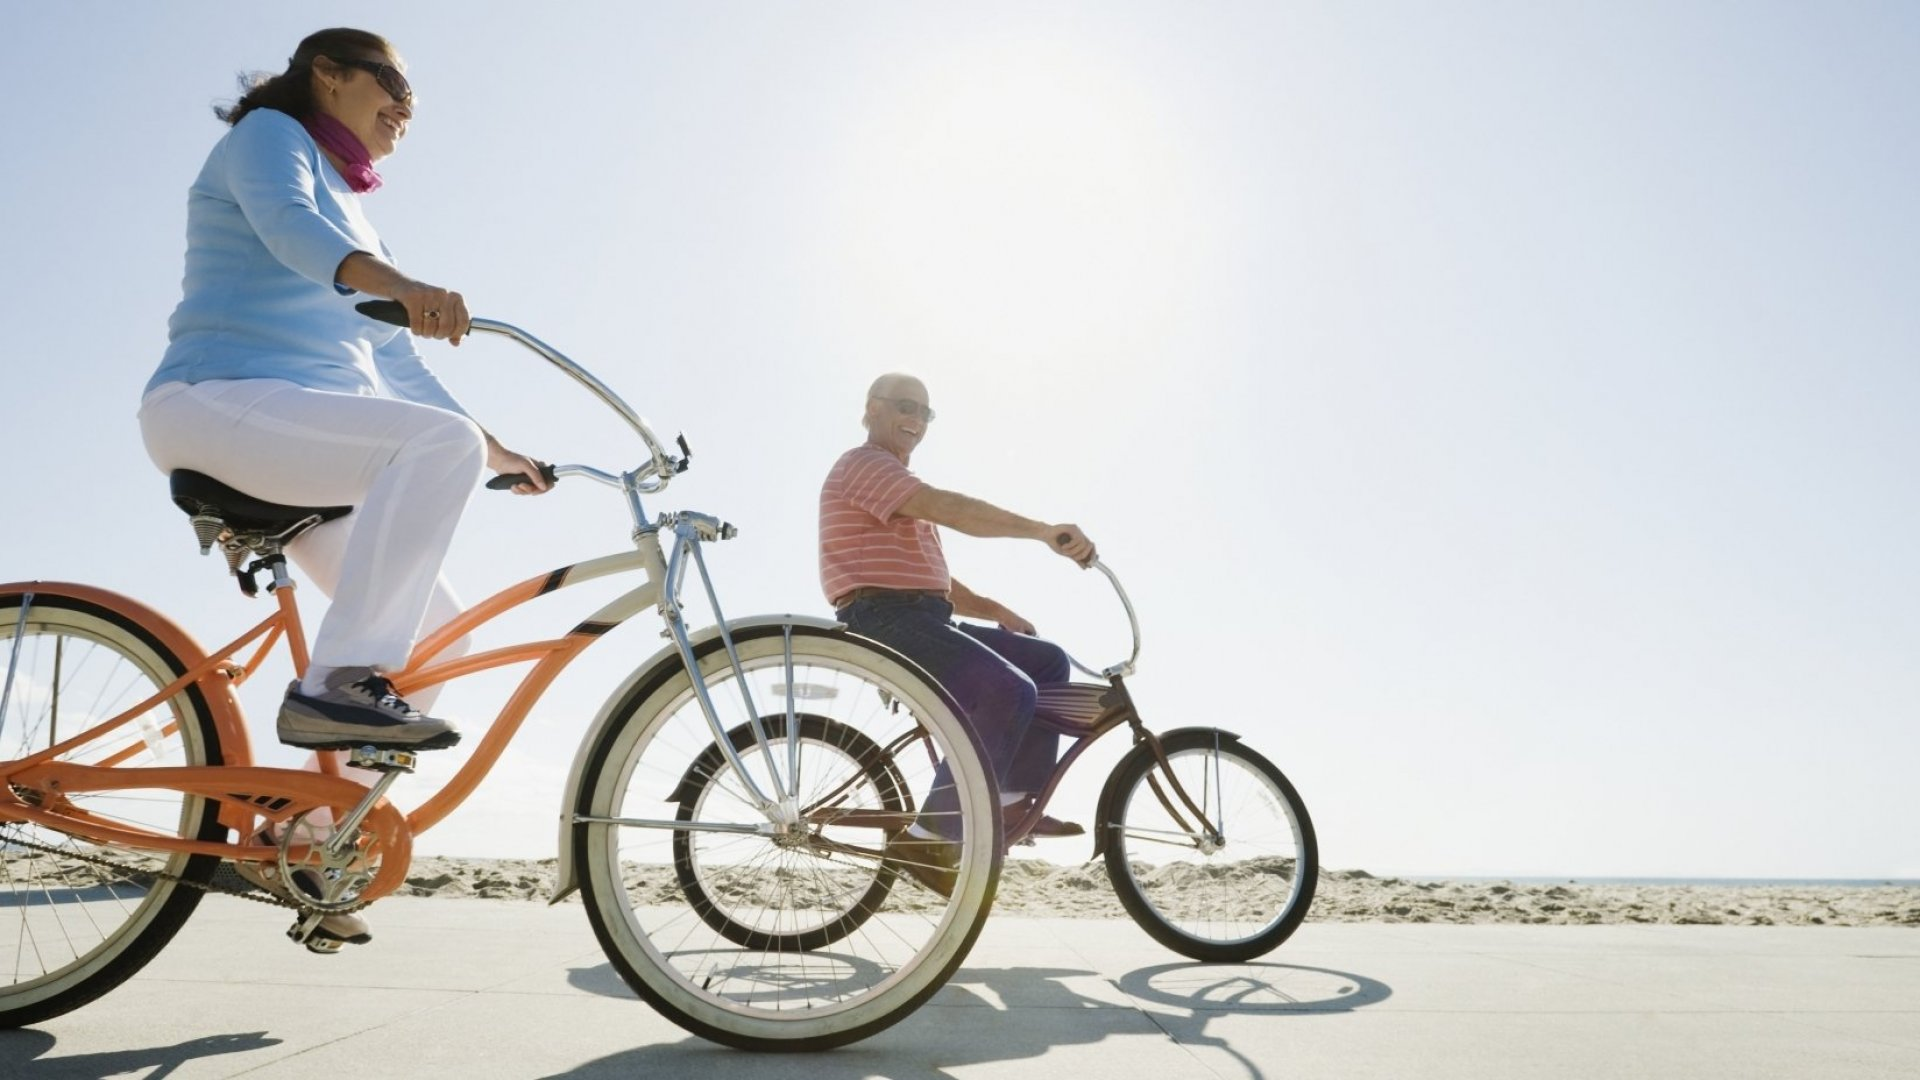 What Everyone Has Wrong About Baby Boomers